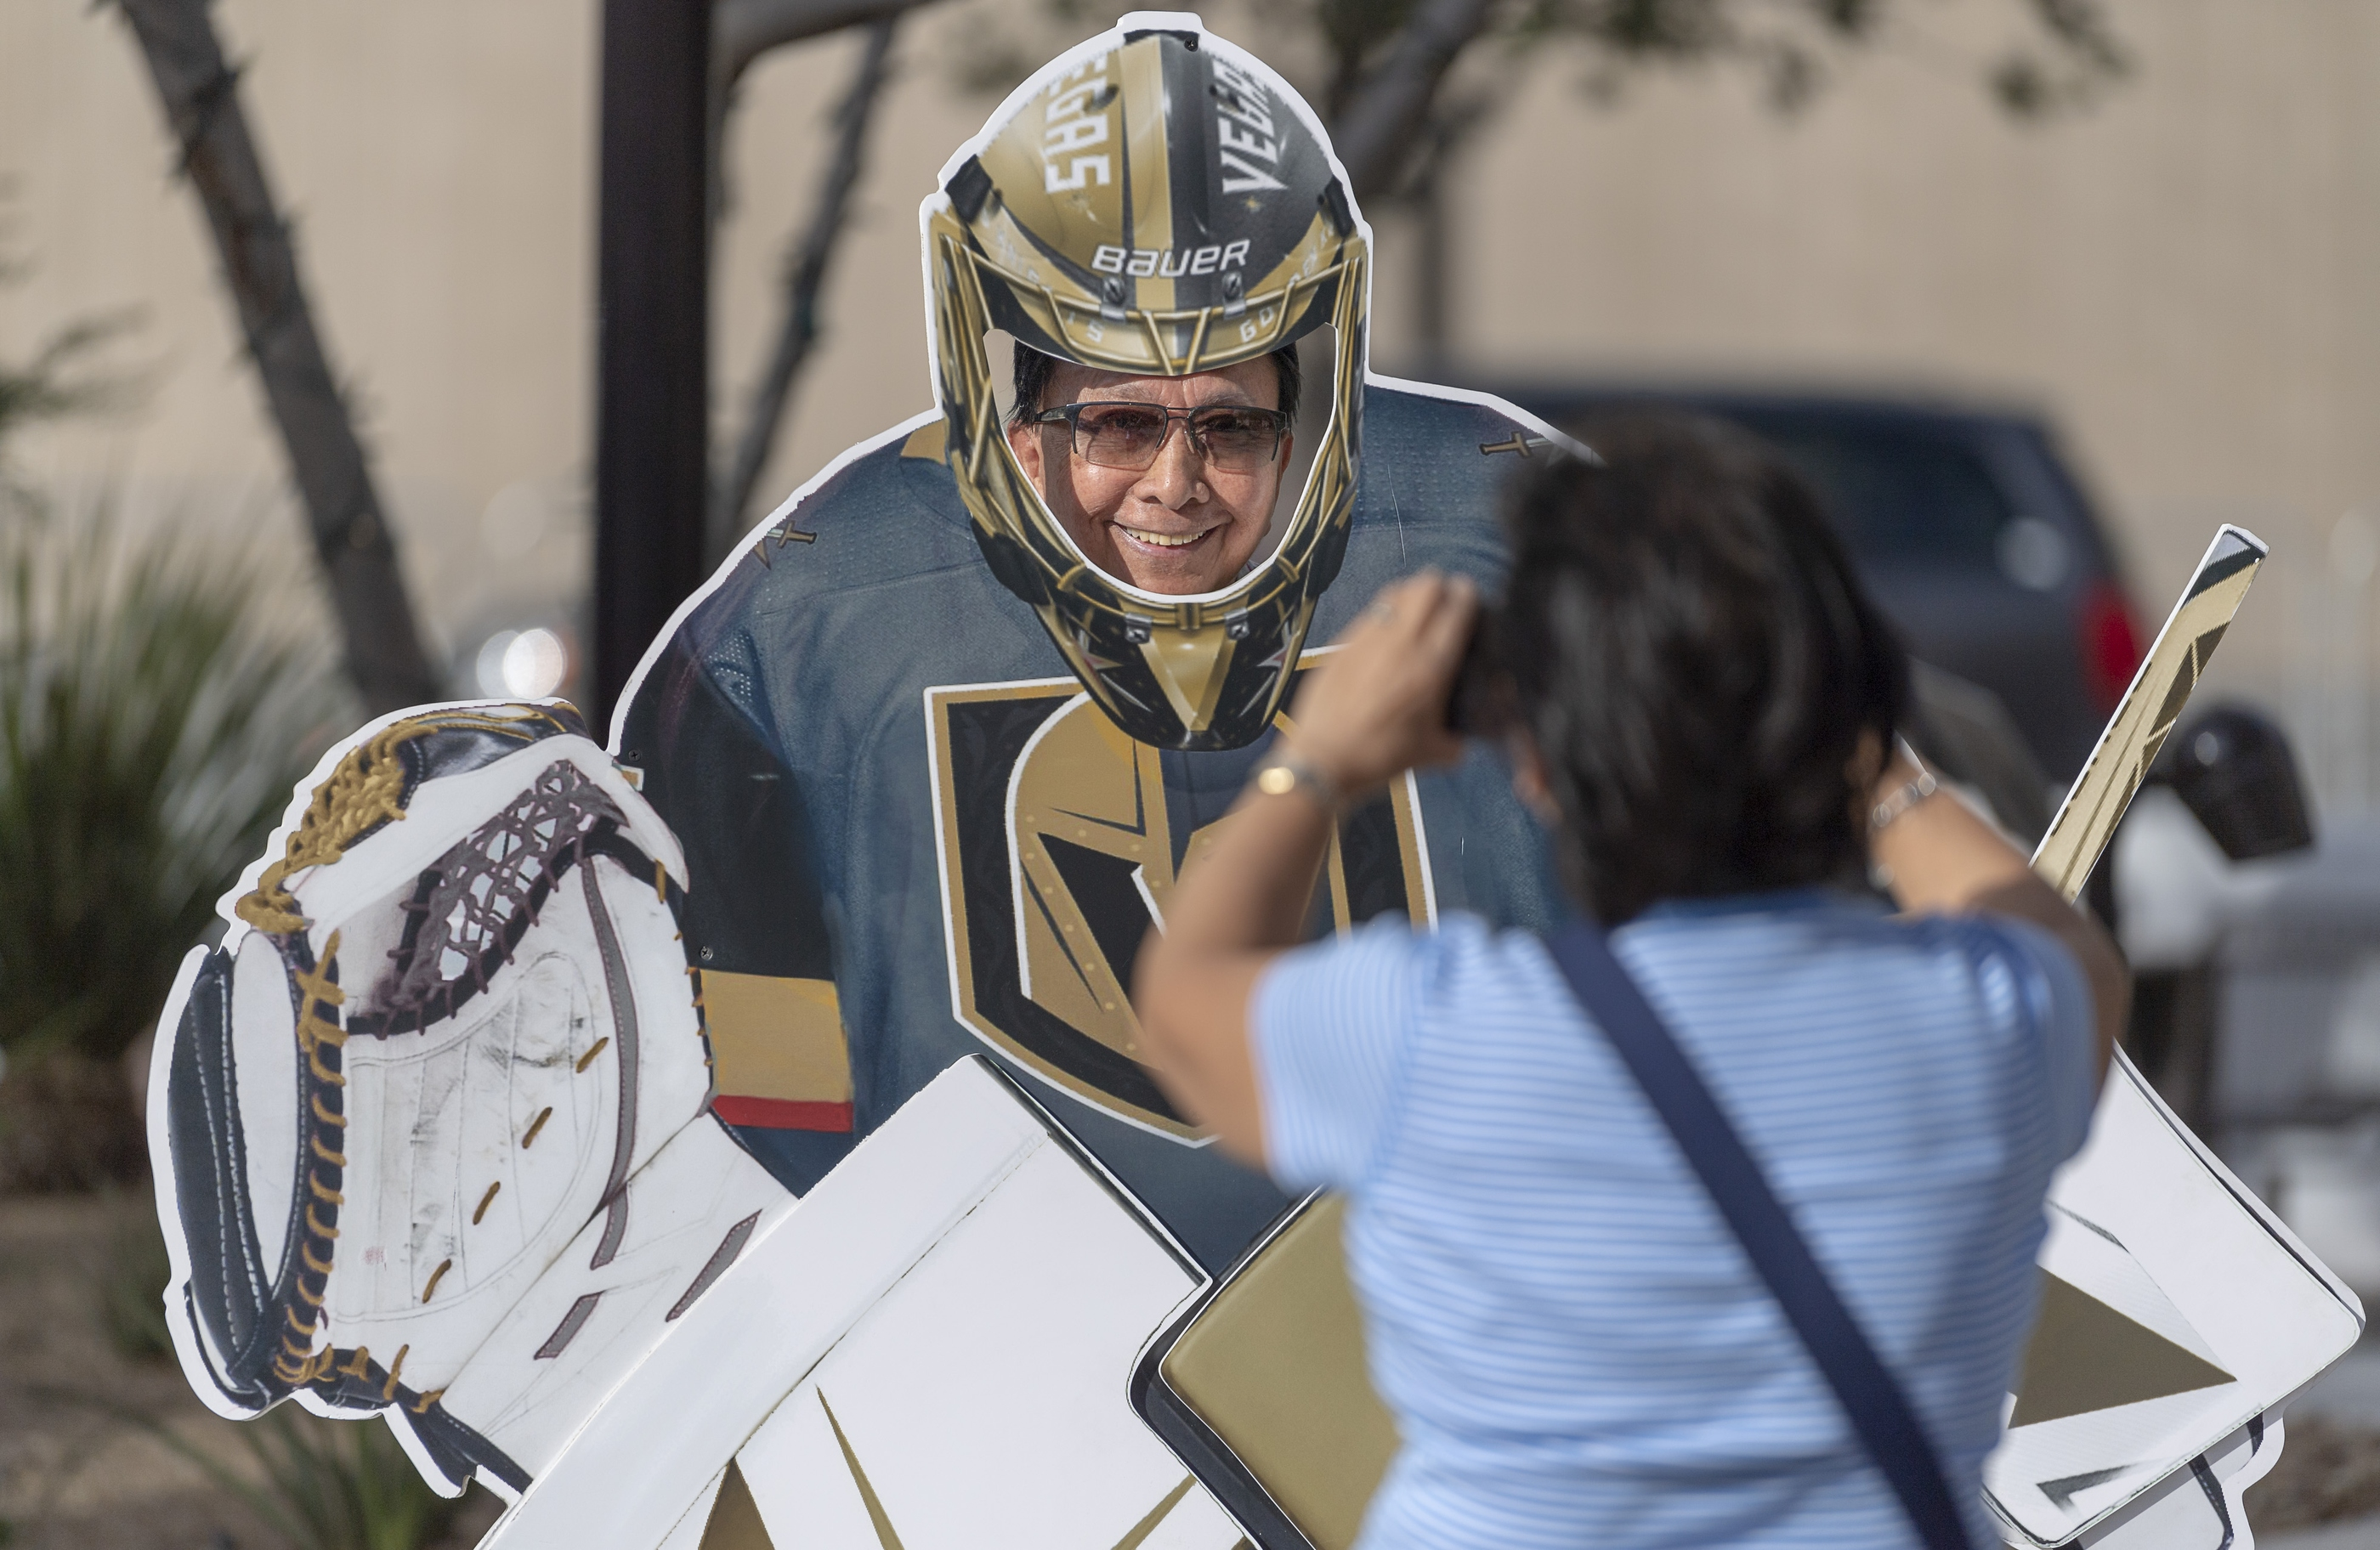 A visitor poses as the goalie for a photo in the pre-game celebration in Toshiba Plaza as the Vegas Golden Knights prepare to meet the Los Angeles Kings in the first quarterfinal game of the NHL Stanley Cup Playoffs at T-Mobile Arena in Las Vegas on Wednesday, April 11, 2018.  CREDIT: Mark Damon/Las Vegas News Bureau